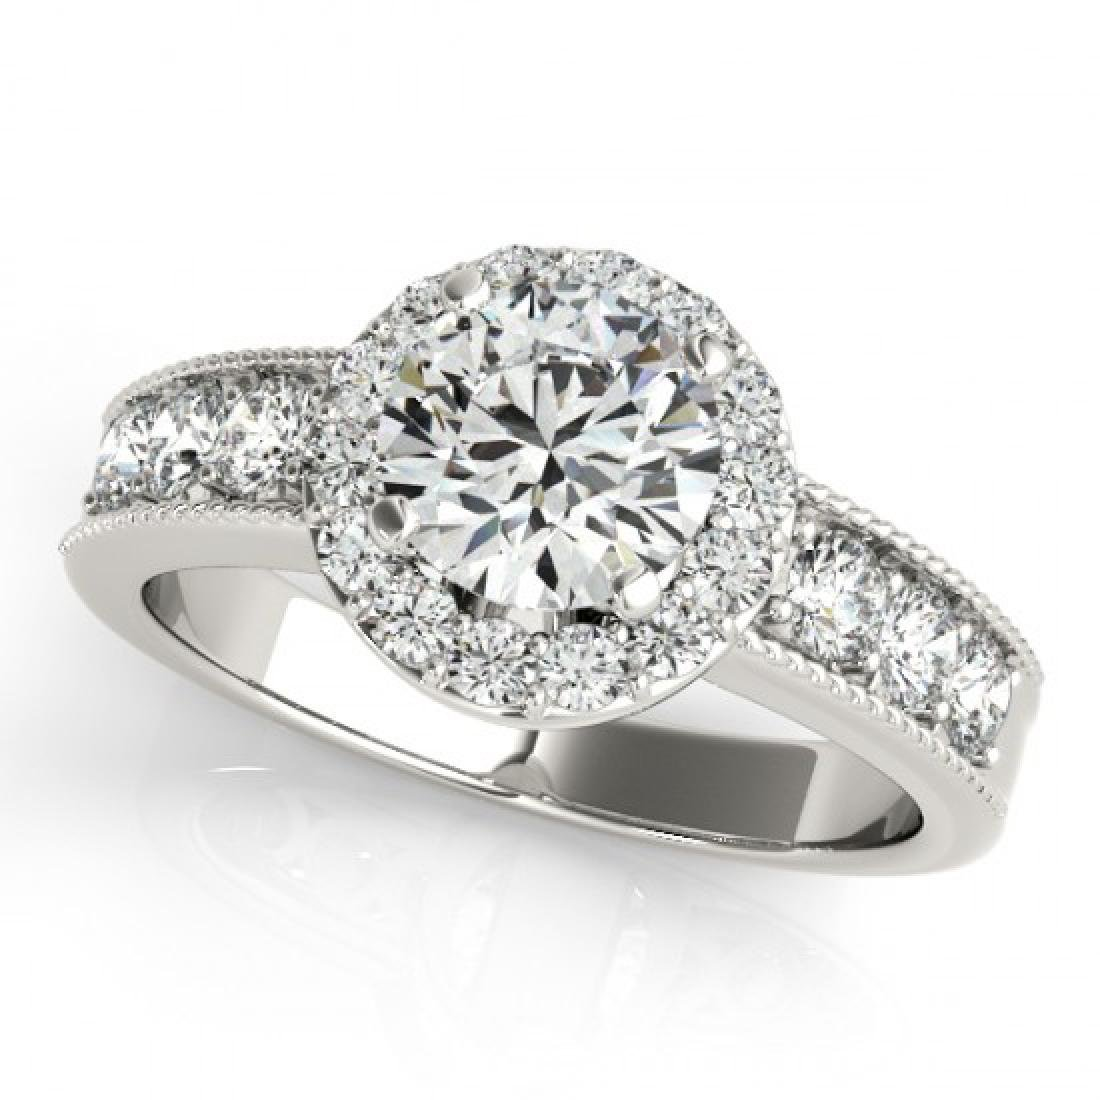 1.85 CTW Certified VS/SI Diamond Solitaire Halo Ring